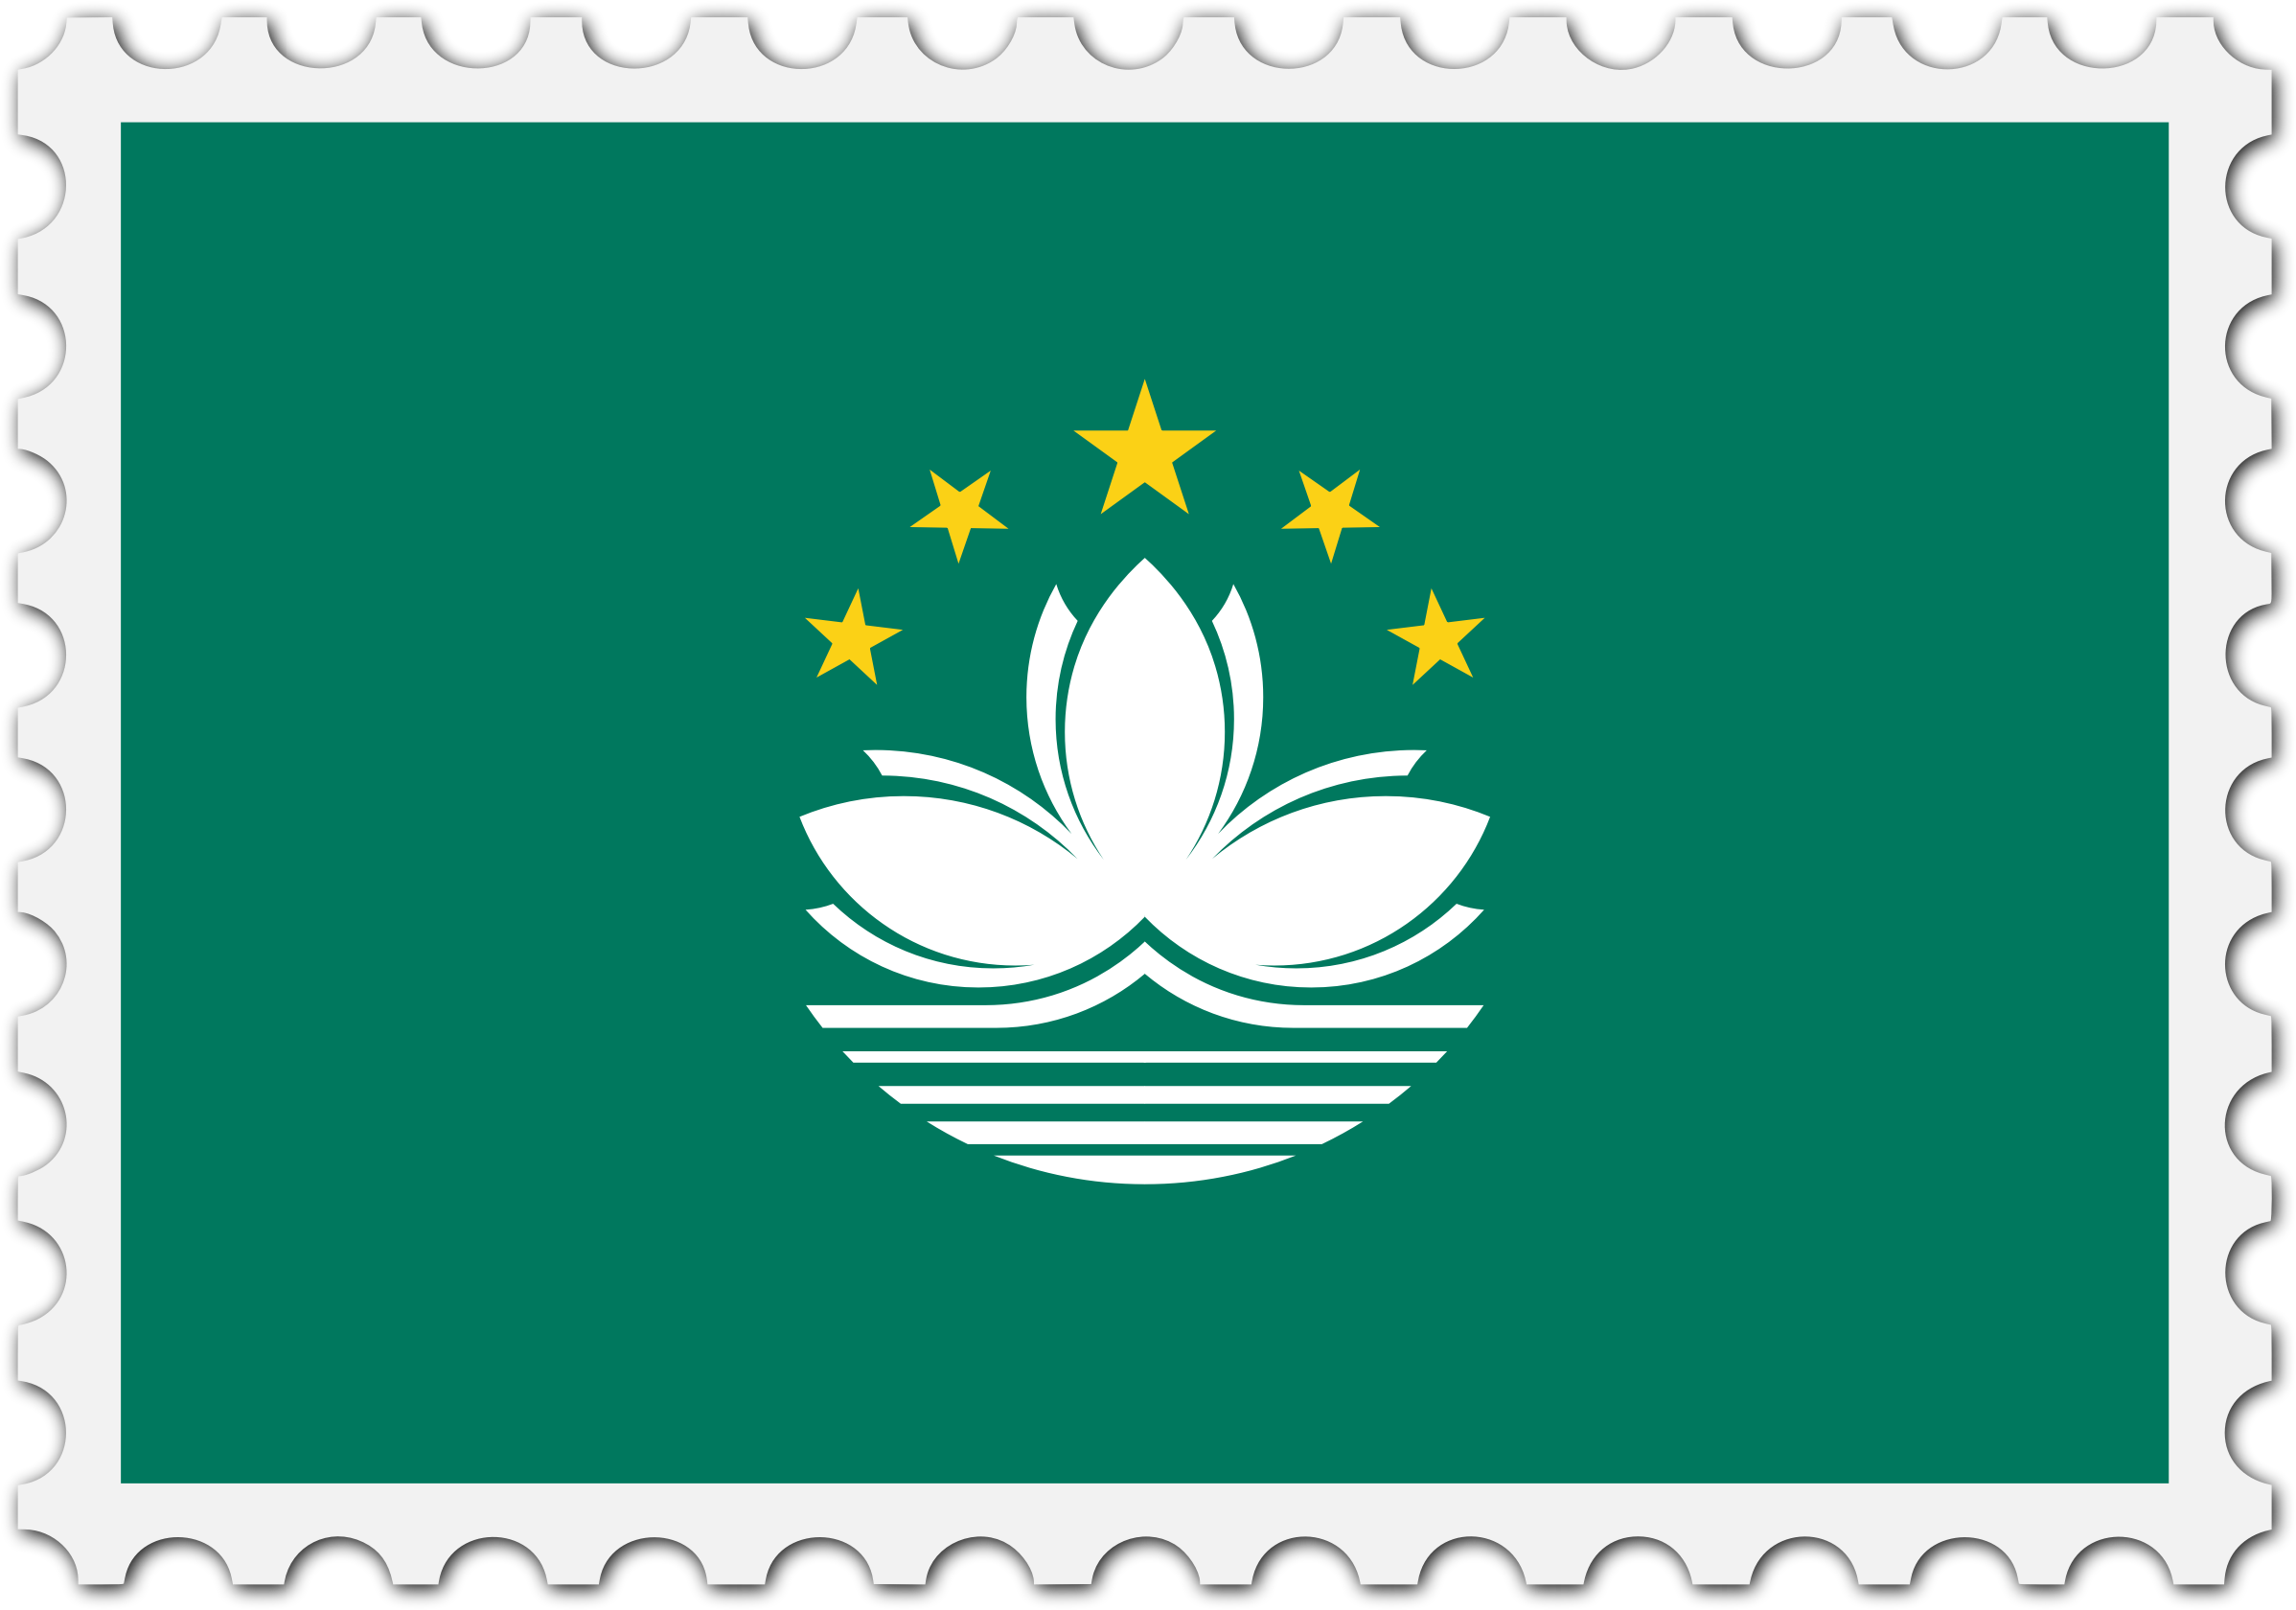 Macau flag stamp by Firkin